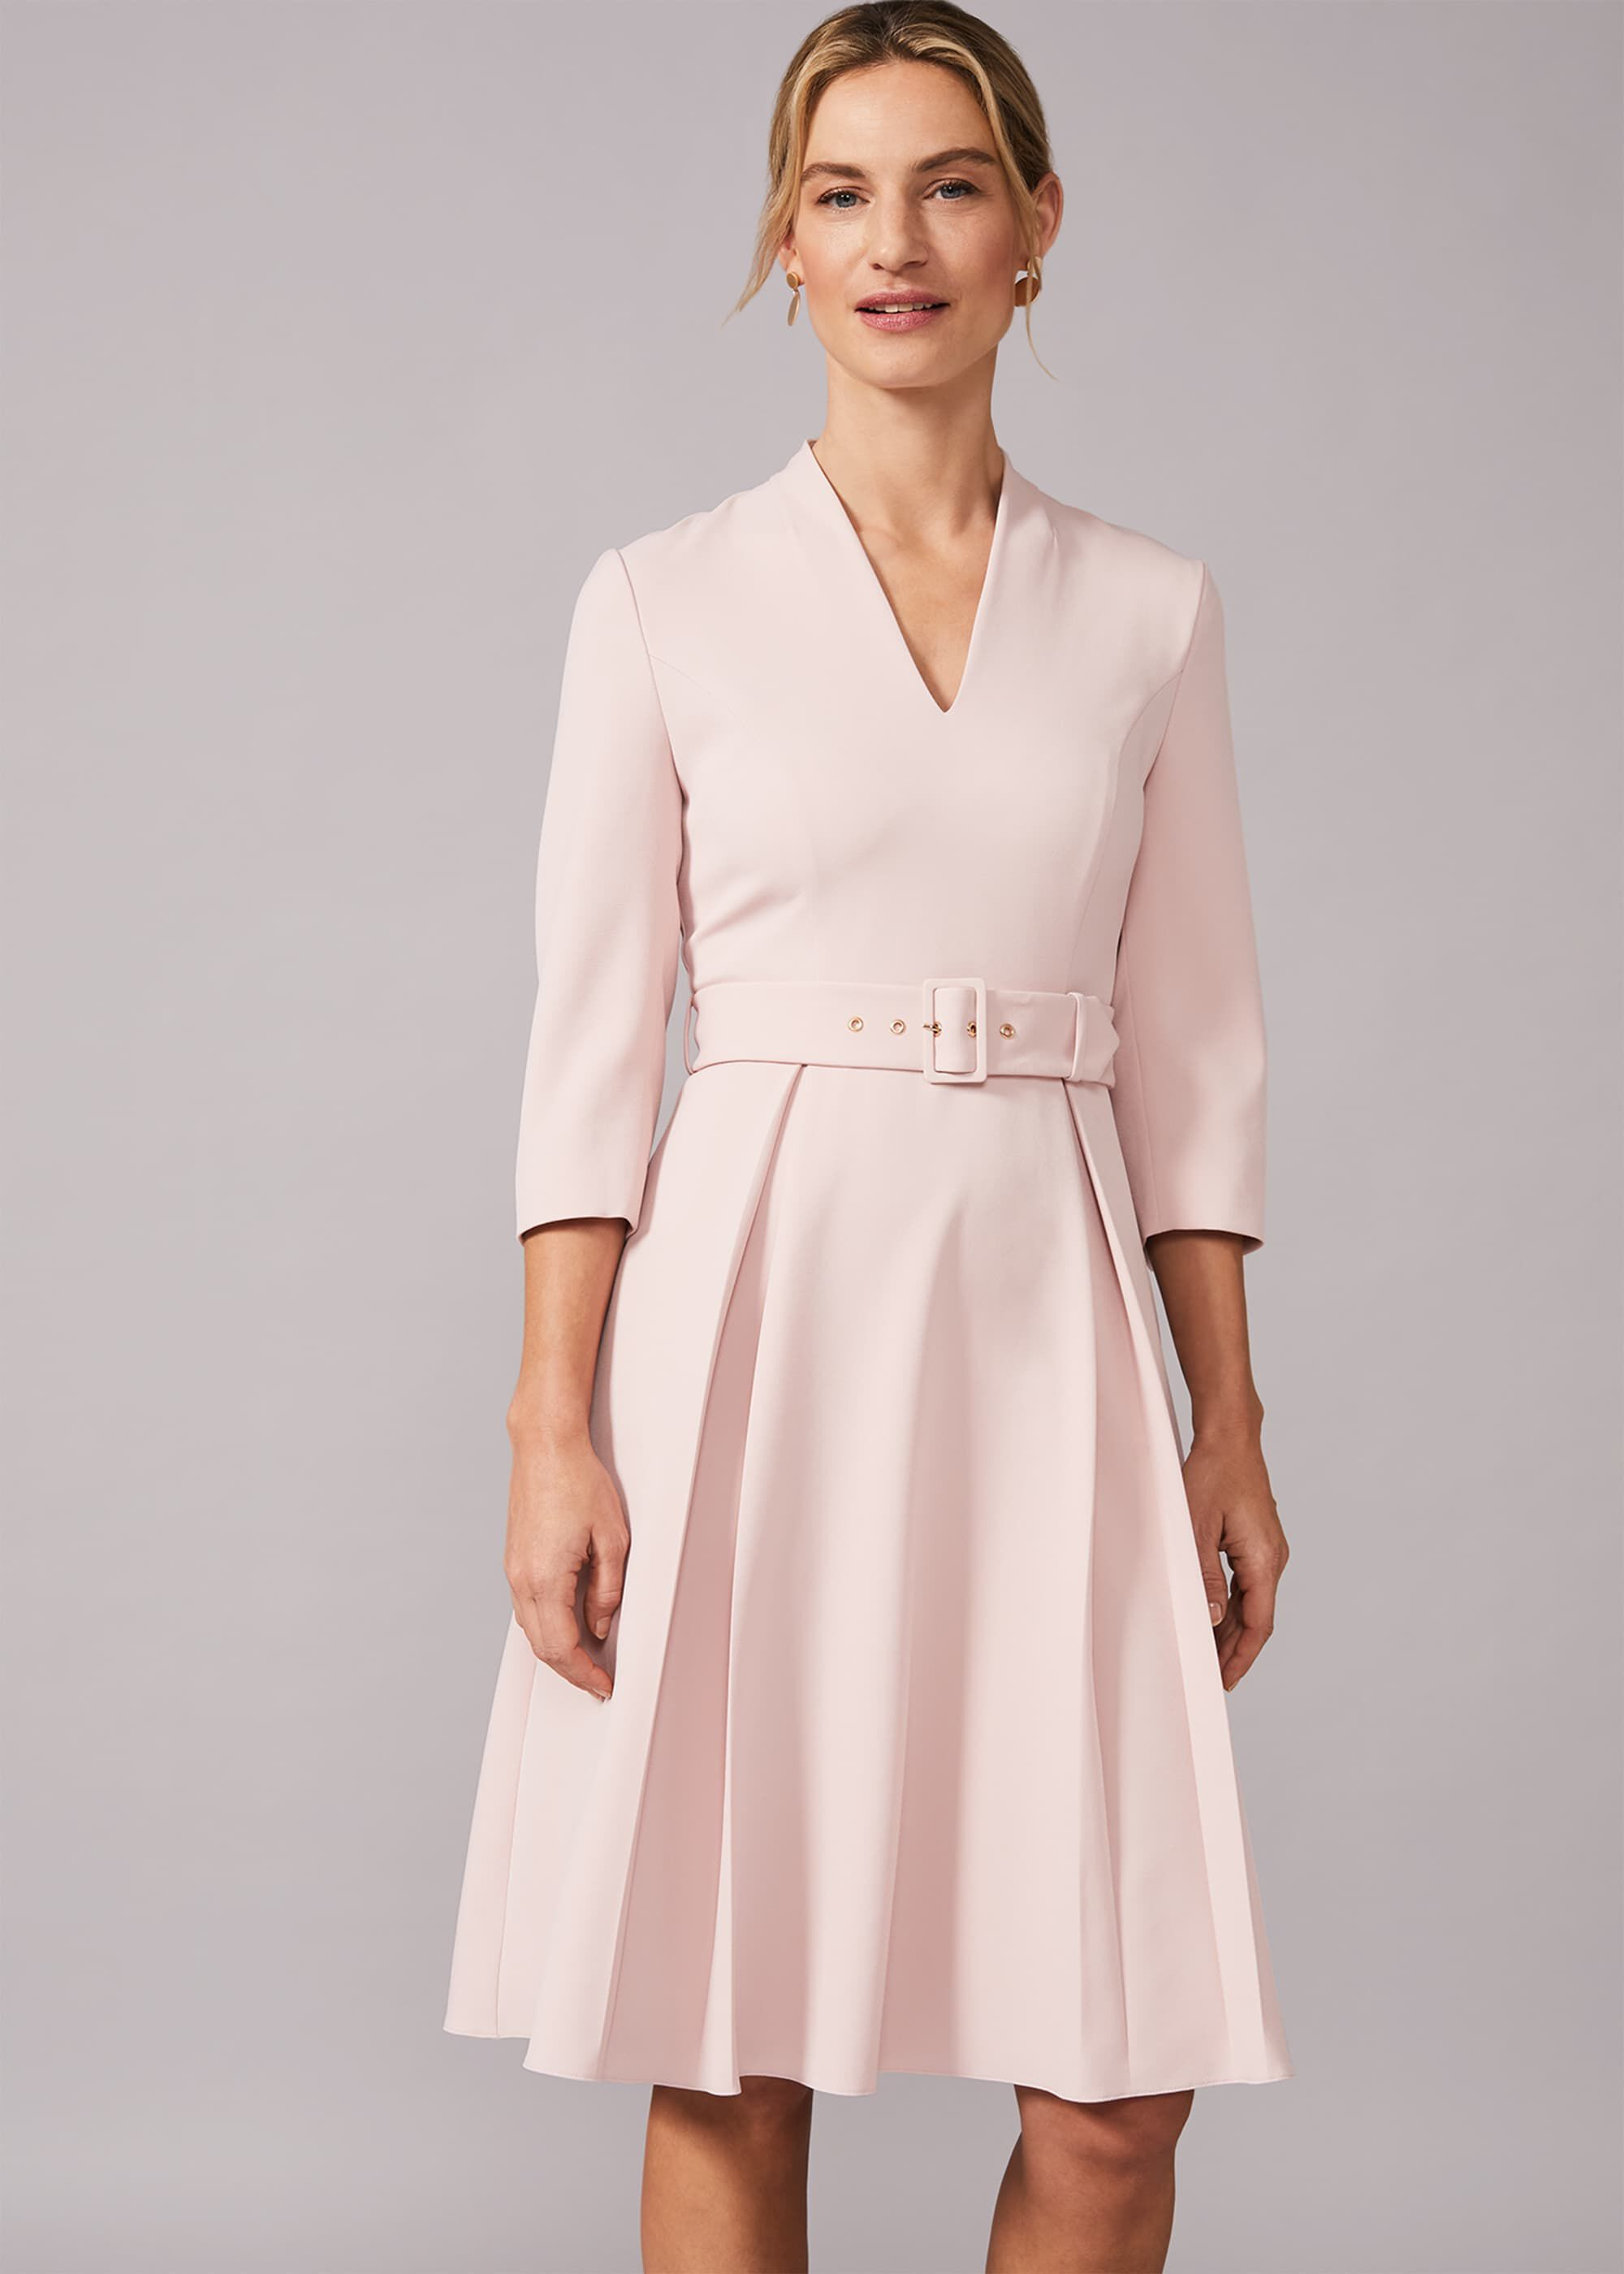 Phase Eight Margot Belted Dress, Pink, Fit & Flare, Occasion Dress